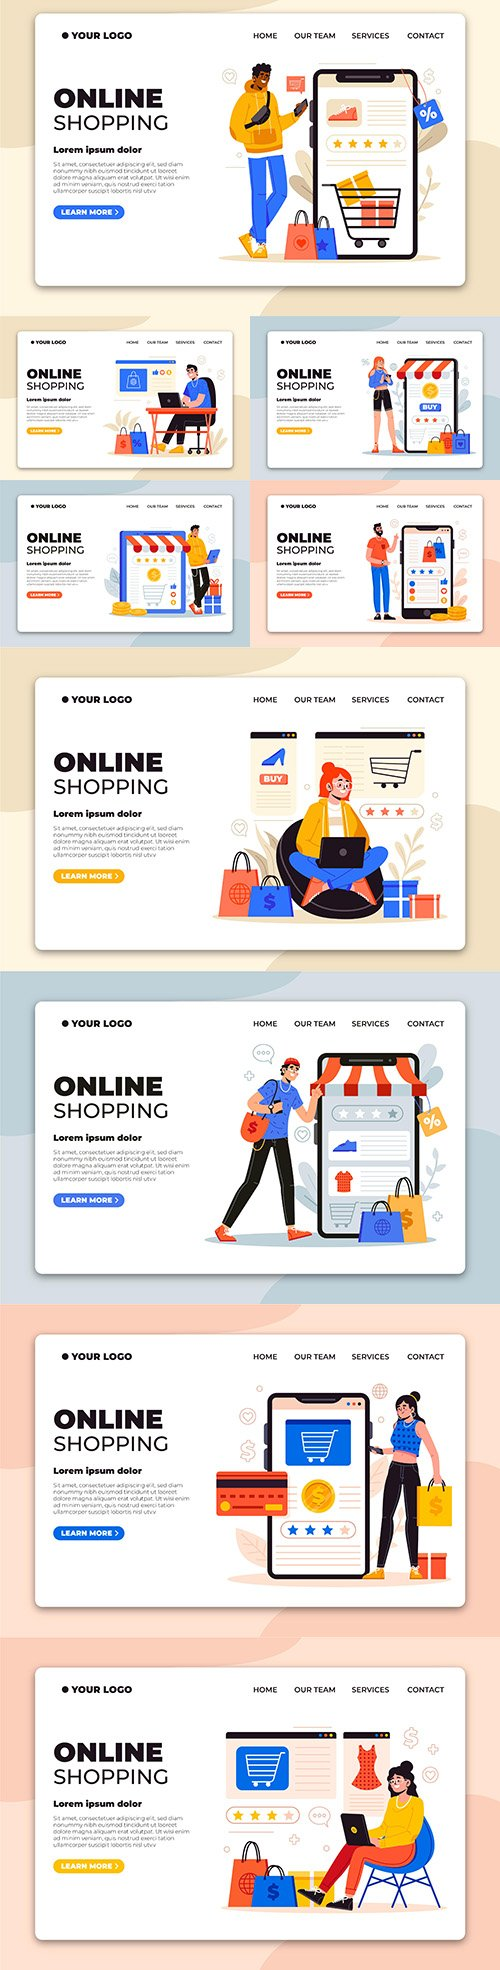 Shopping online on mobile app landing page concept